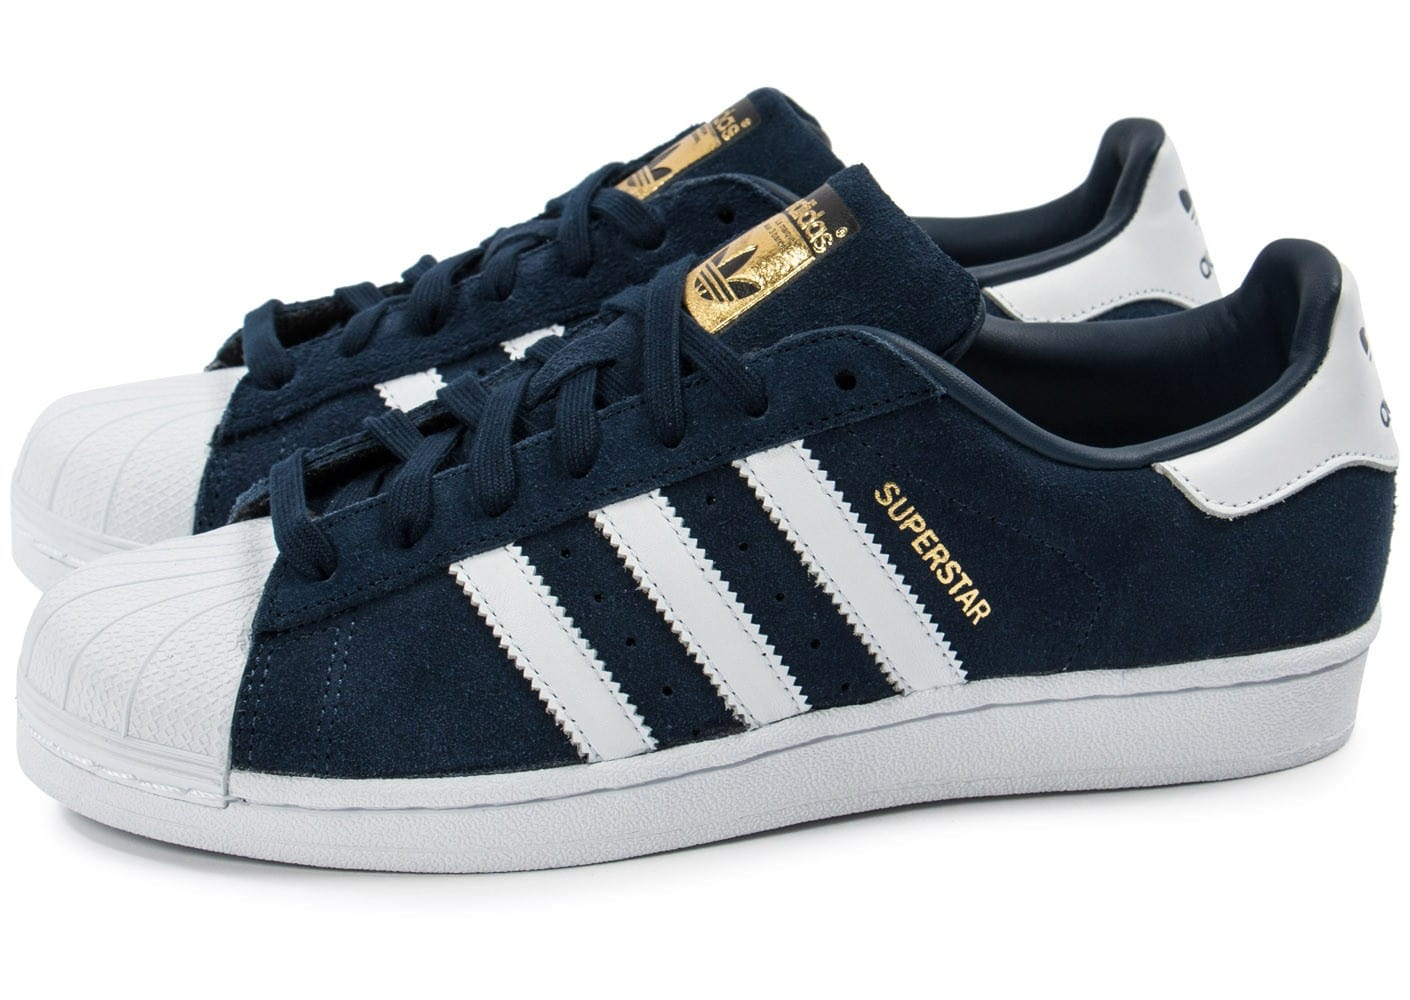 adidas superstar suede bleu marine chaussures homme chausport. Black Bedroom Furniture Sets. Home Design Ideas